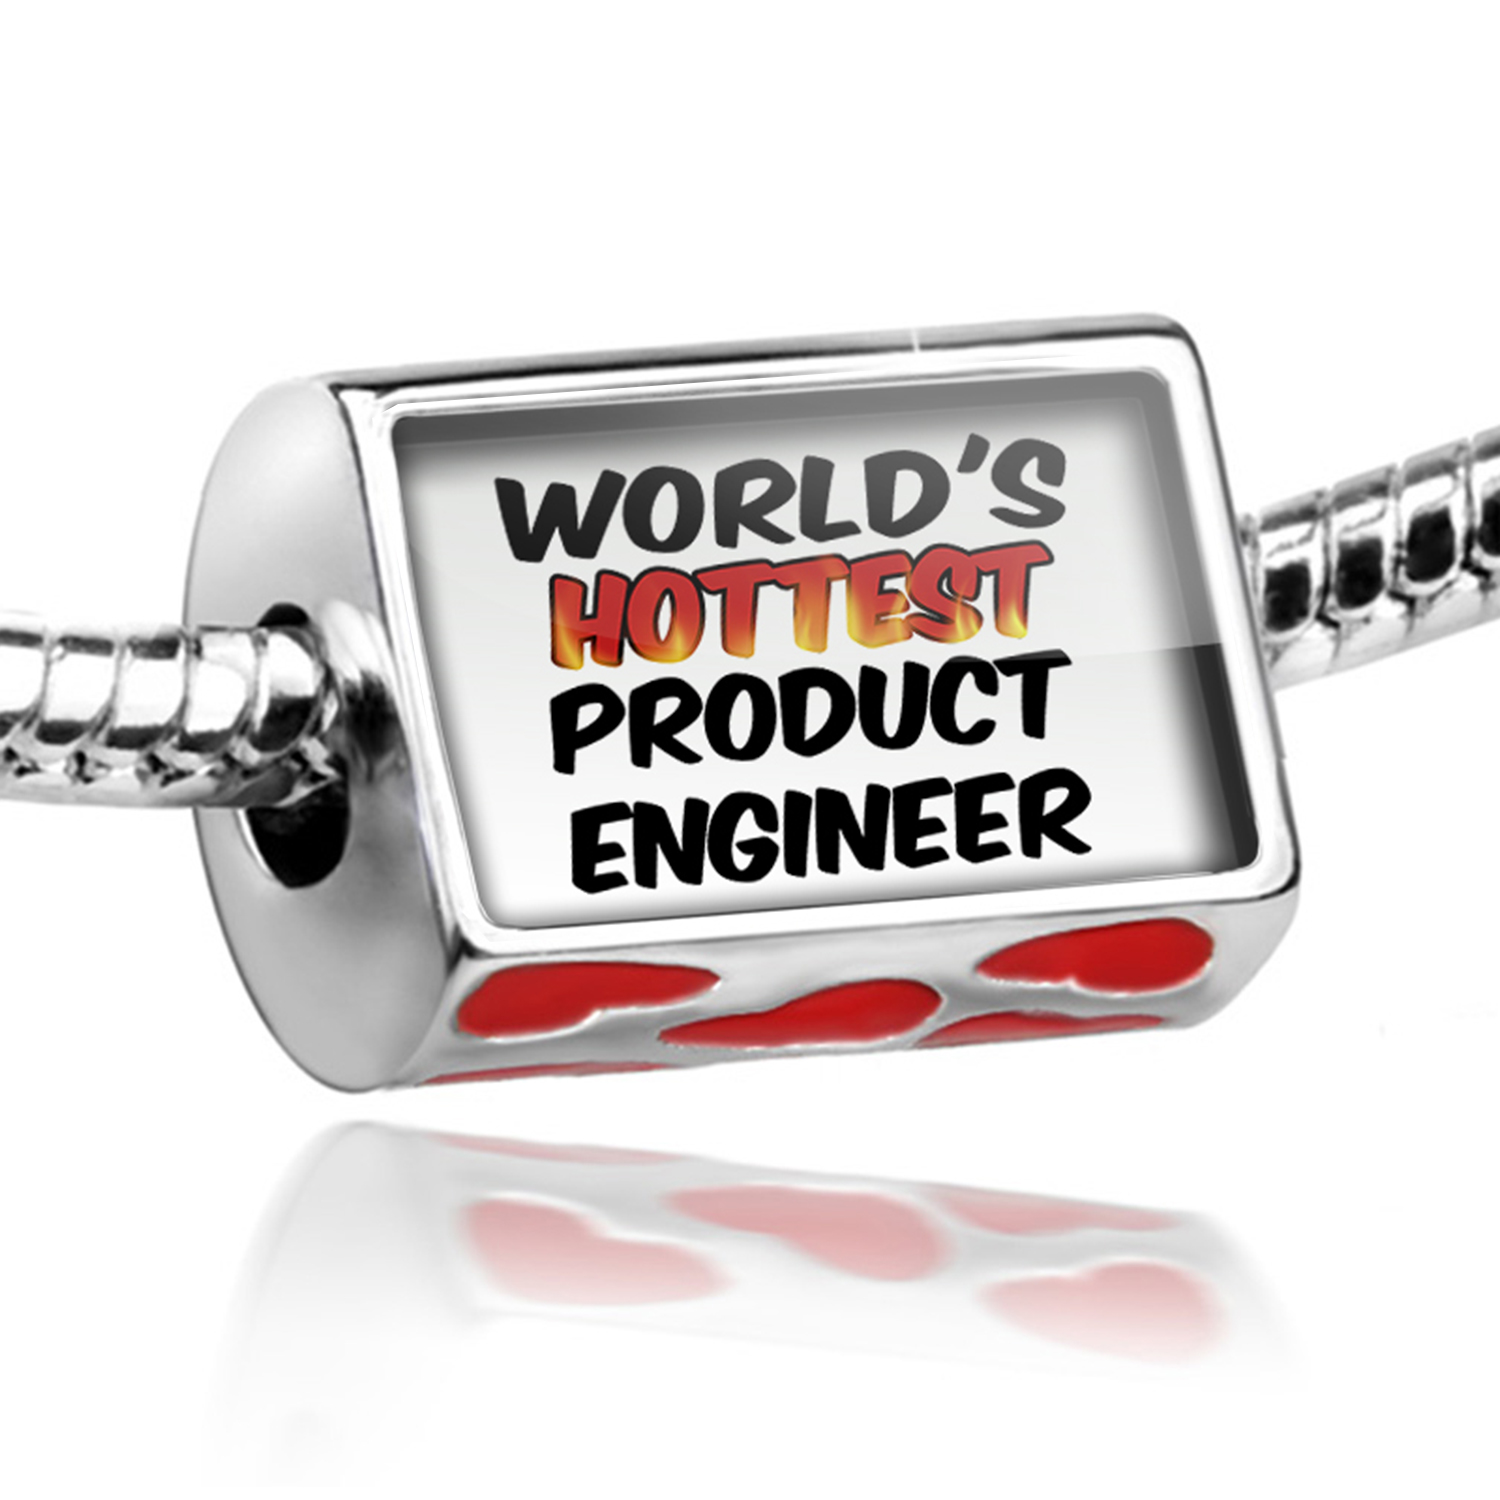 Bead Worlds hottest Product Engineer Charm Fits All European Bracelets